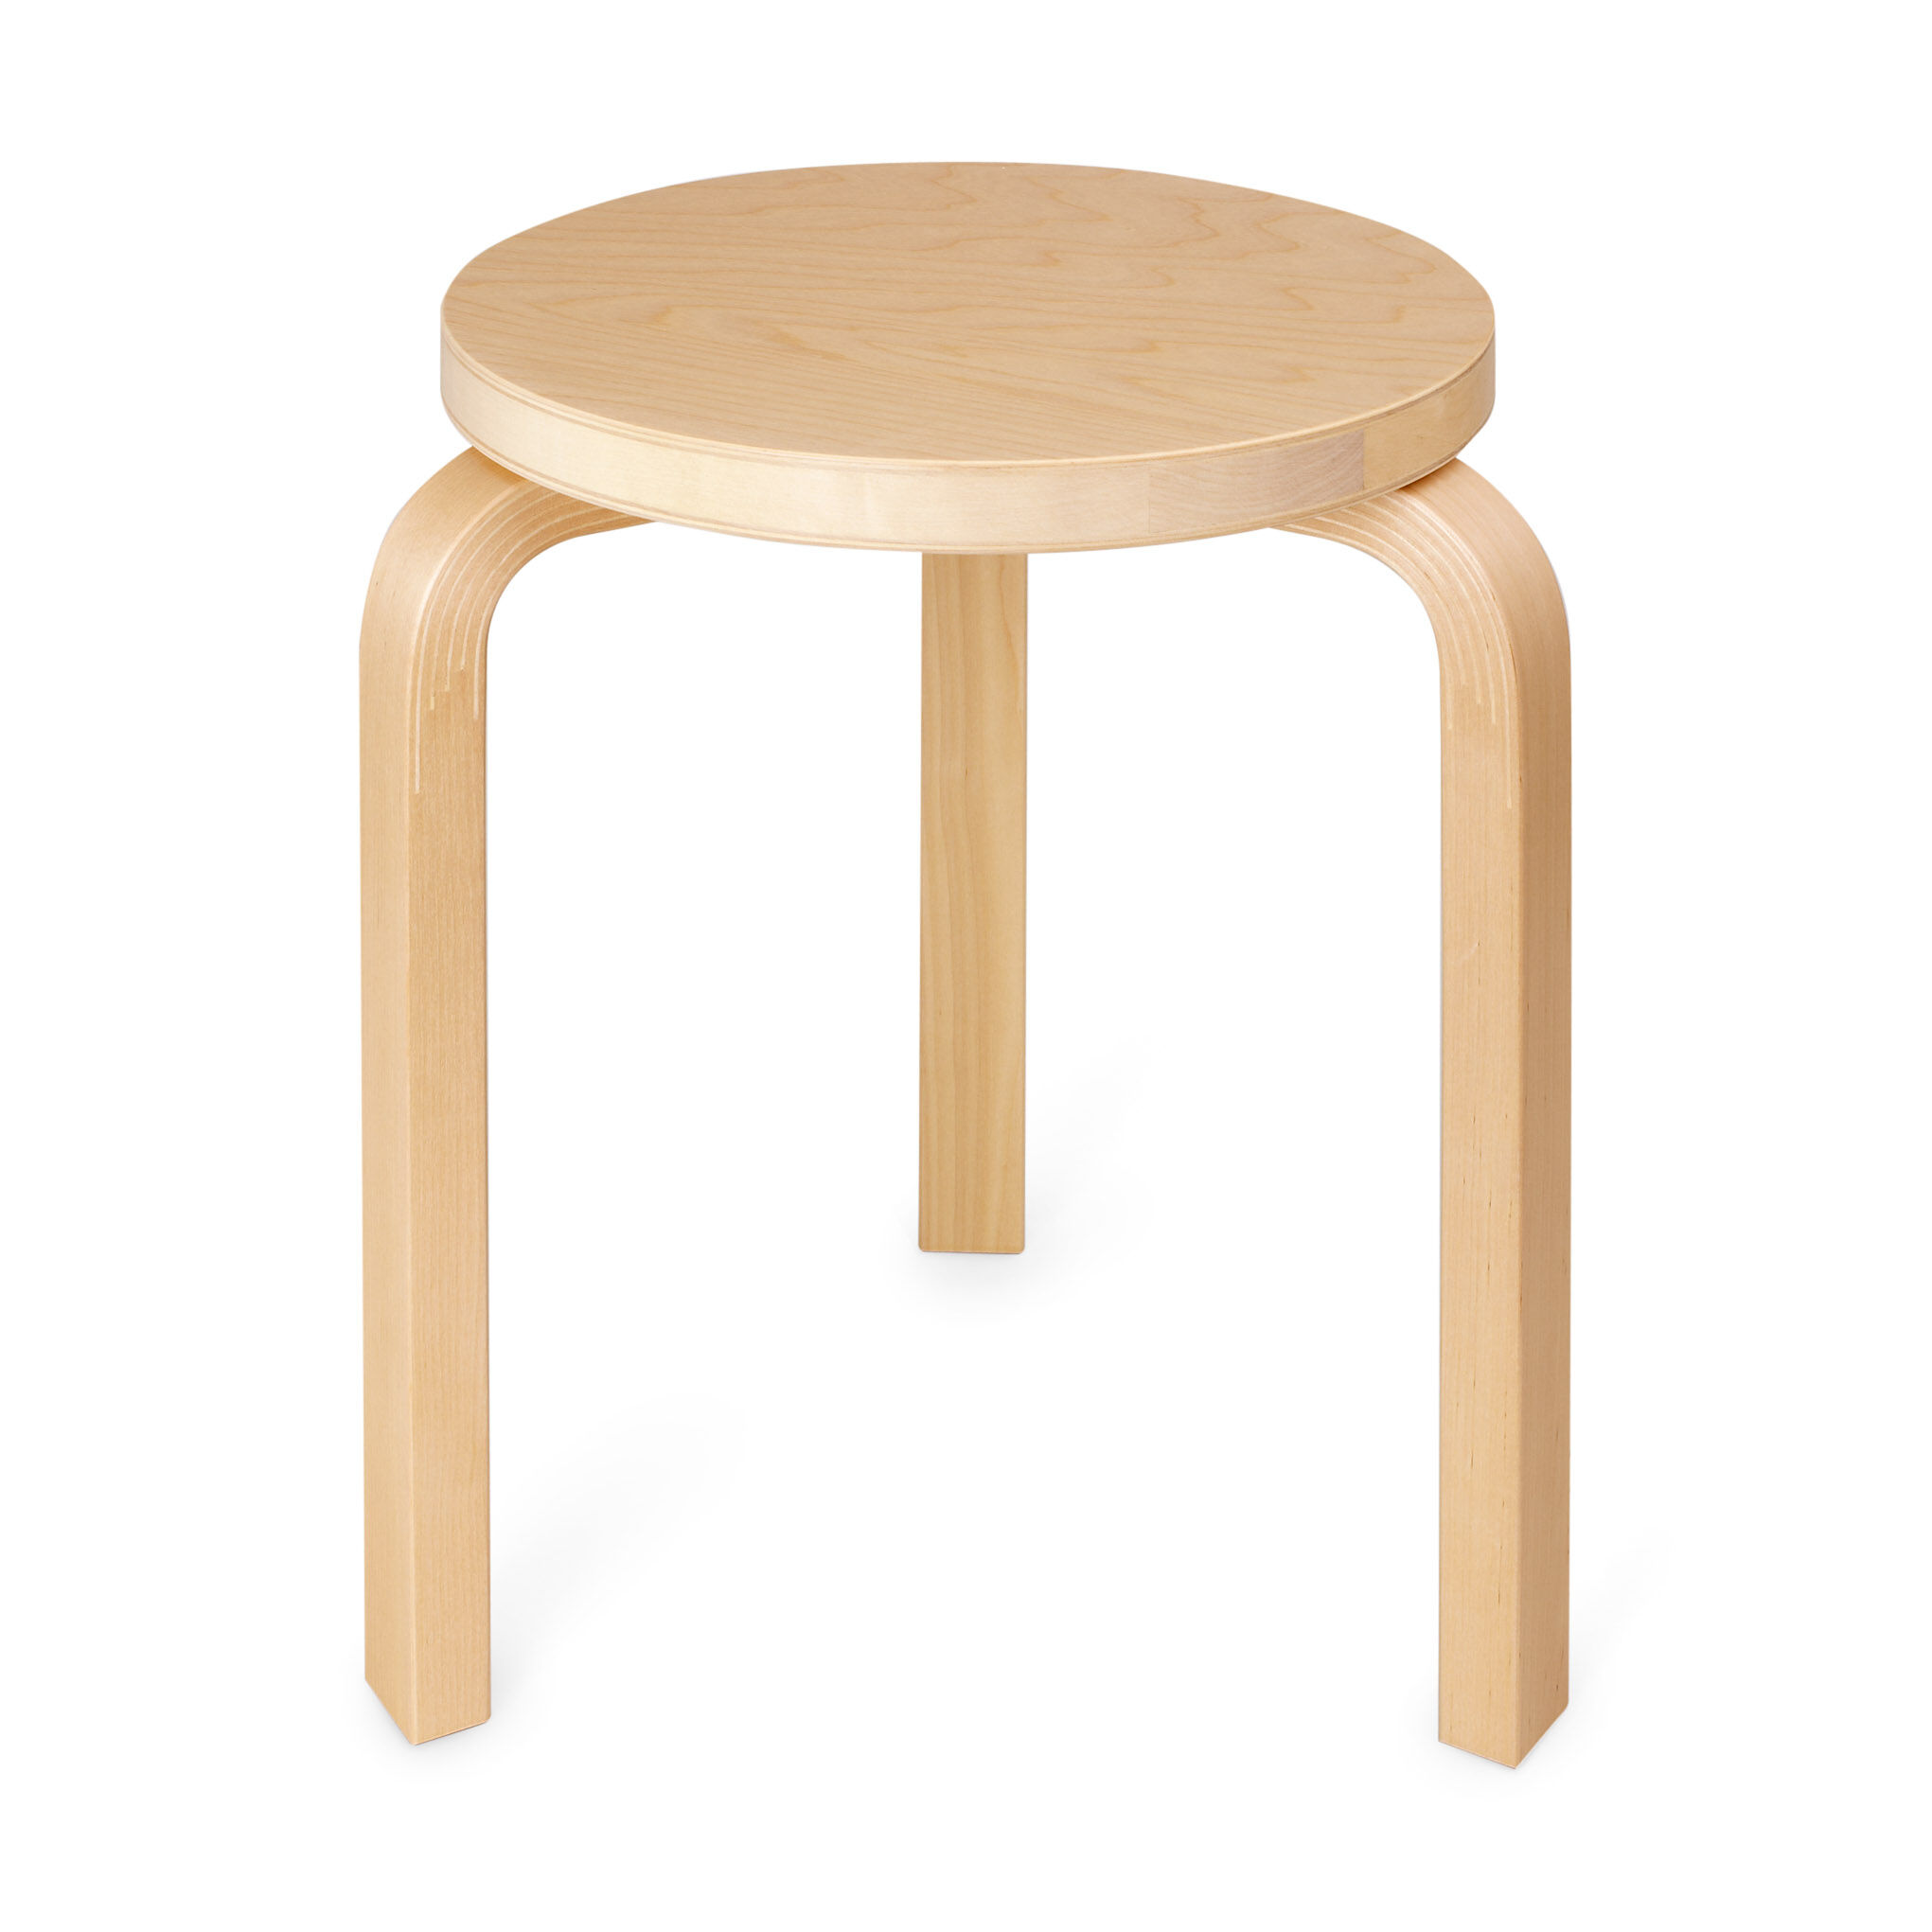 Three-Legged Stacking Stool - Birch Top in color Birch  sc 1 st  MoMA Design Store & Three-Legged Stacking Stool - Birch Top | MoMA Design Store islam-shia.org